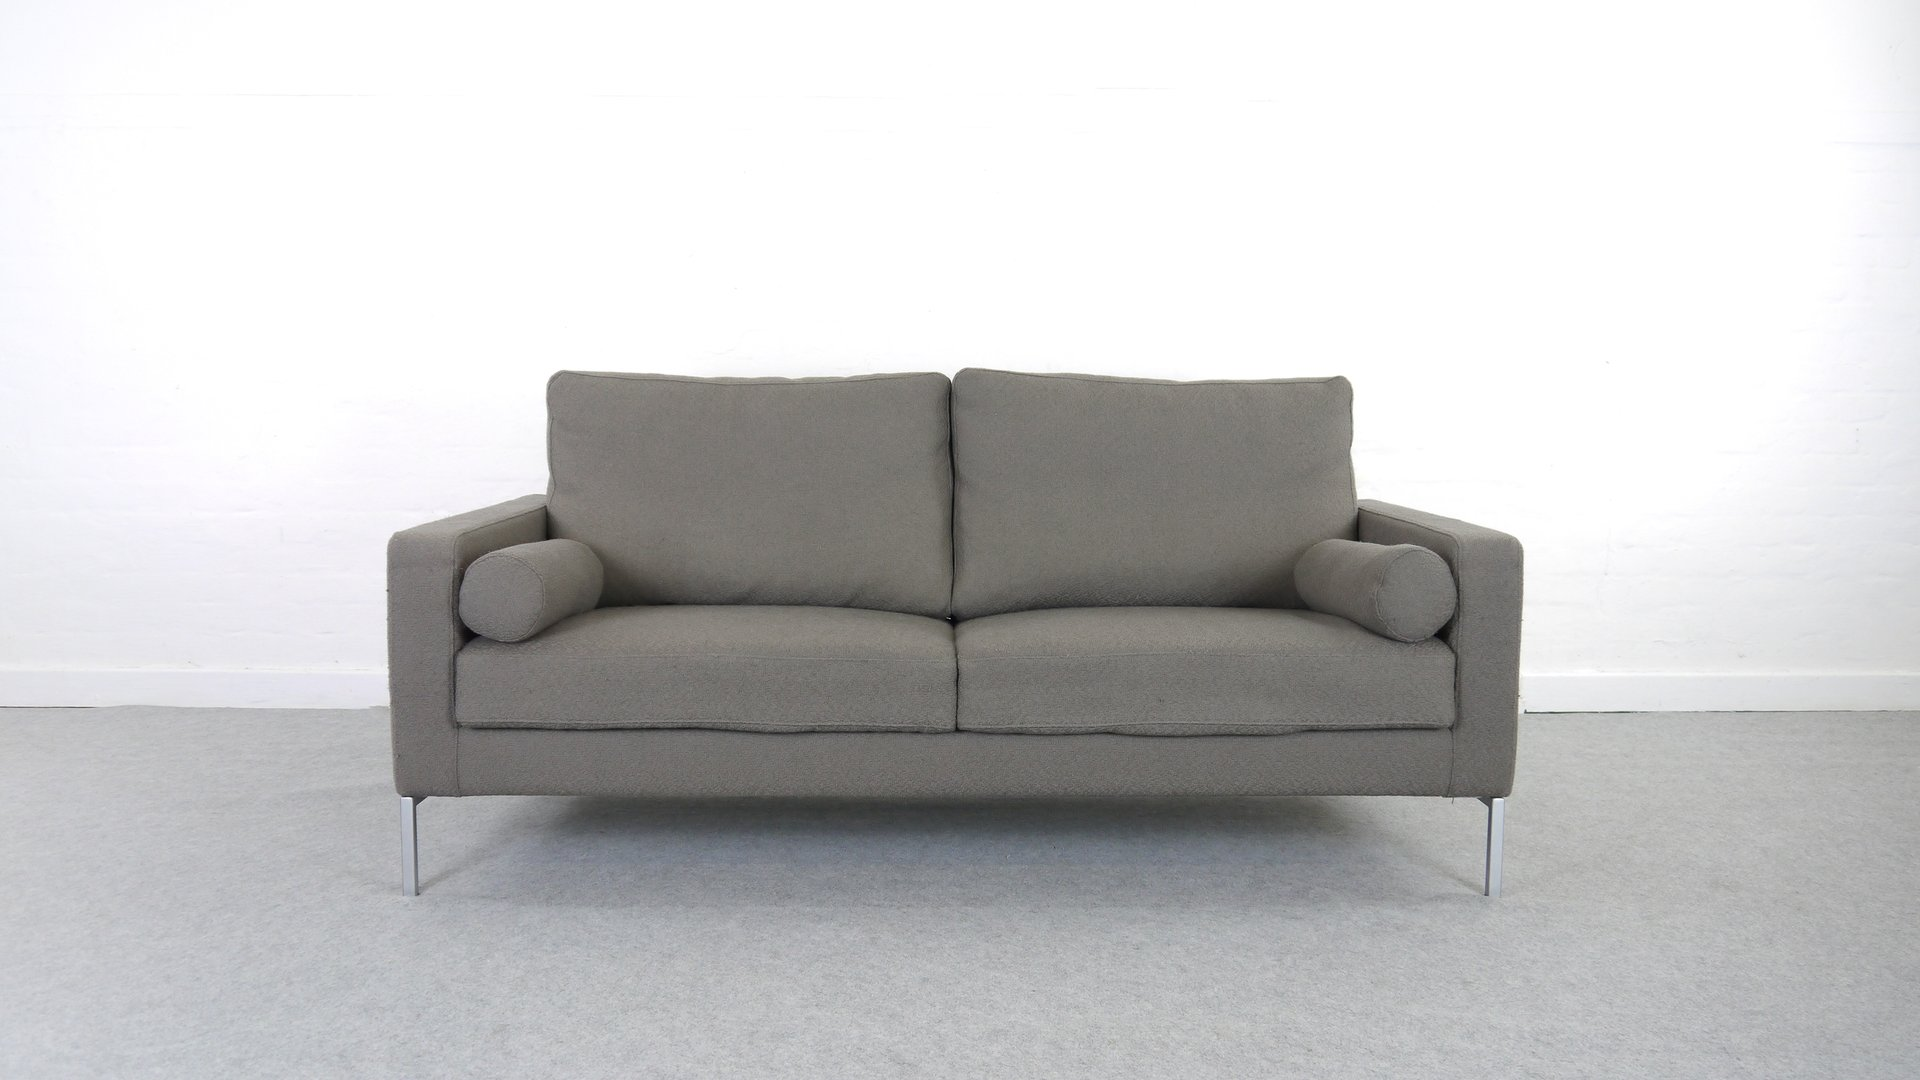 Walter Knoll Sofa Vintage Leon 431 20 Adjustable Sofa By Hansulrich Benz For Walter Knoll